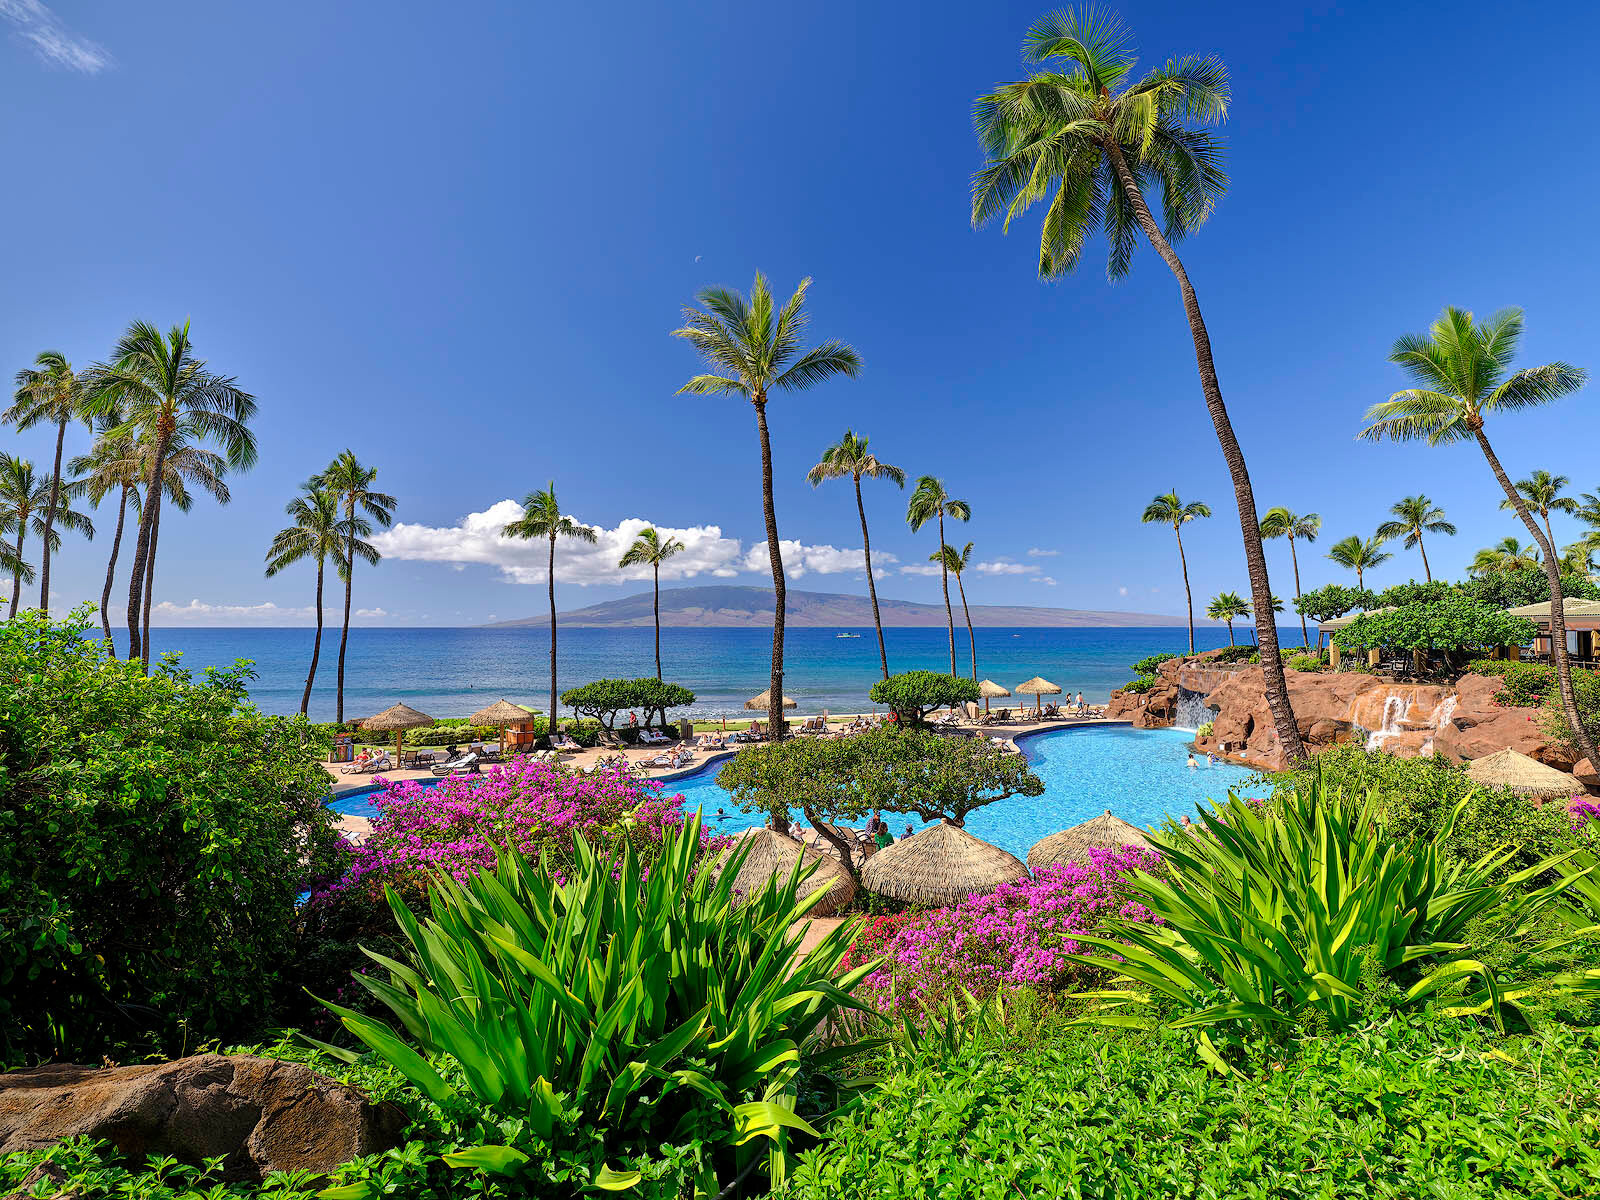 photograph at the Hyatt resort on Kaanapali Beach during the day with coconut palms, flowers, pools, waterfalls and the island of Lanai in the distance.